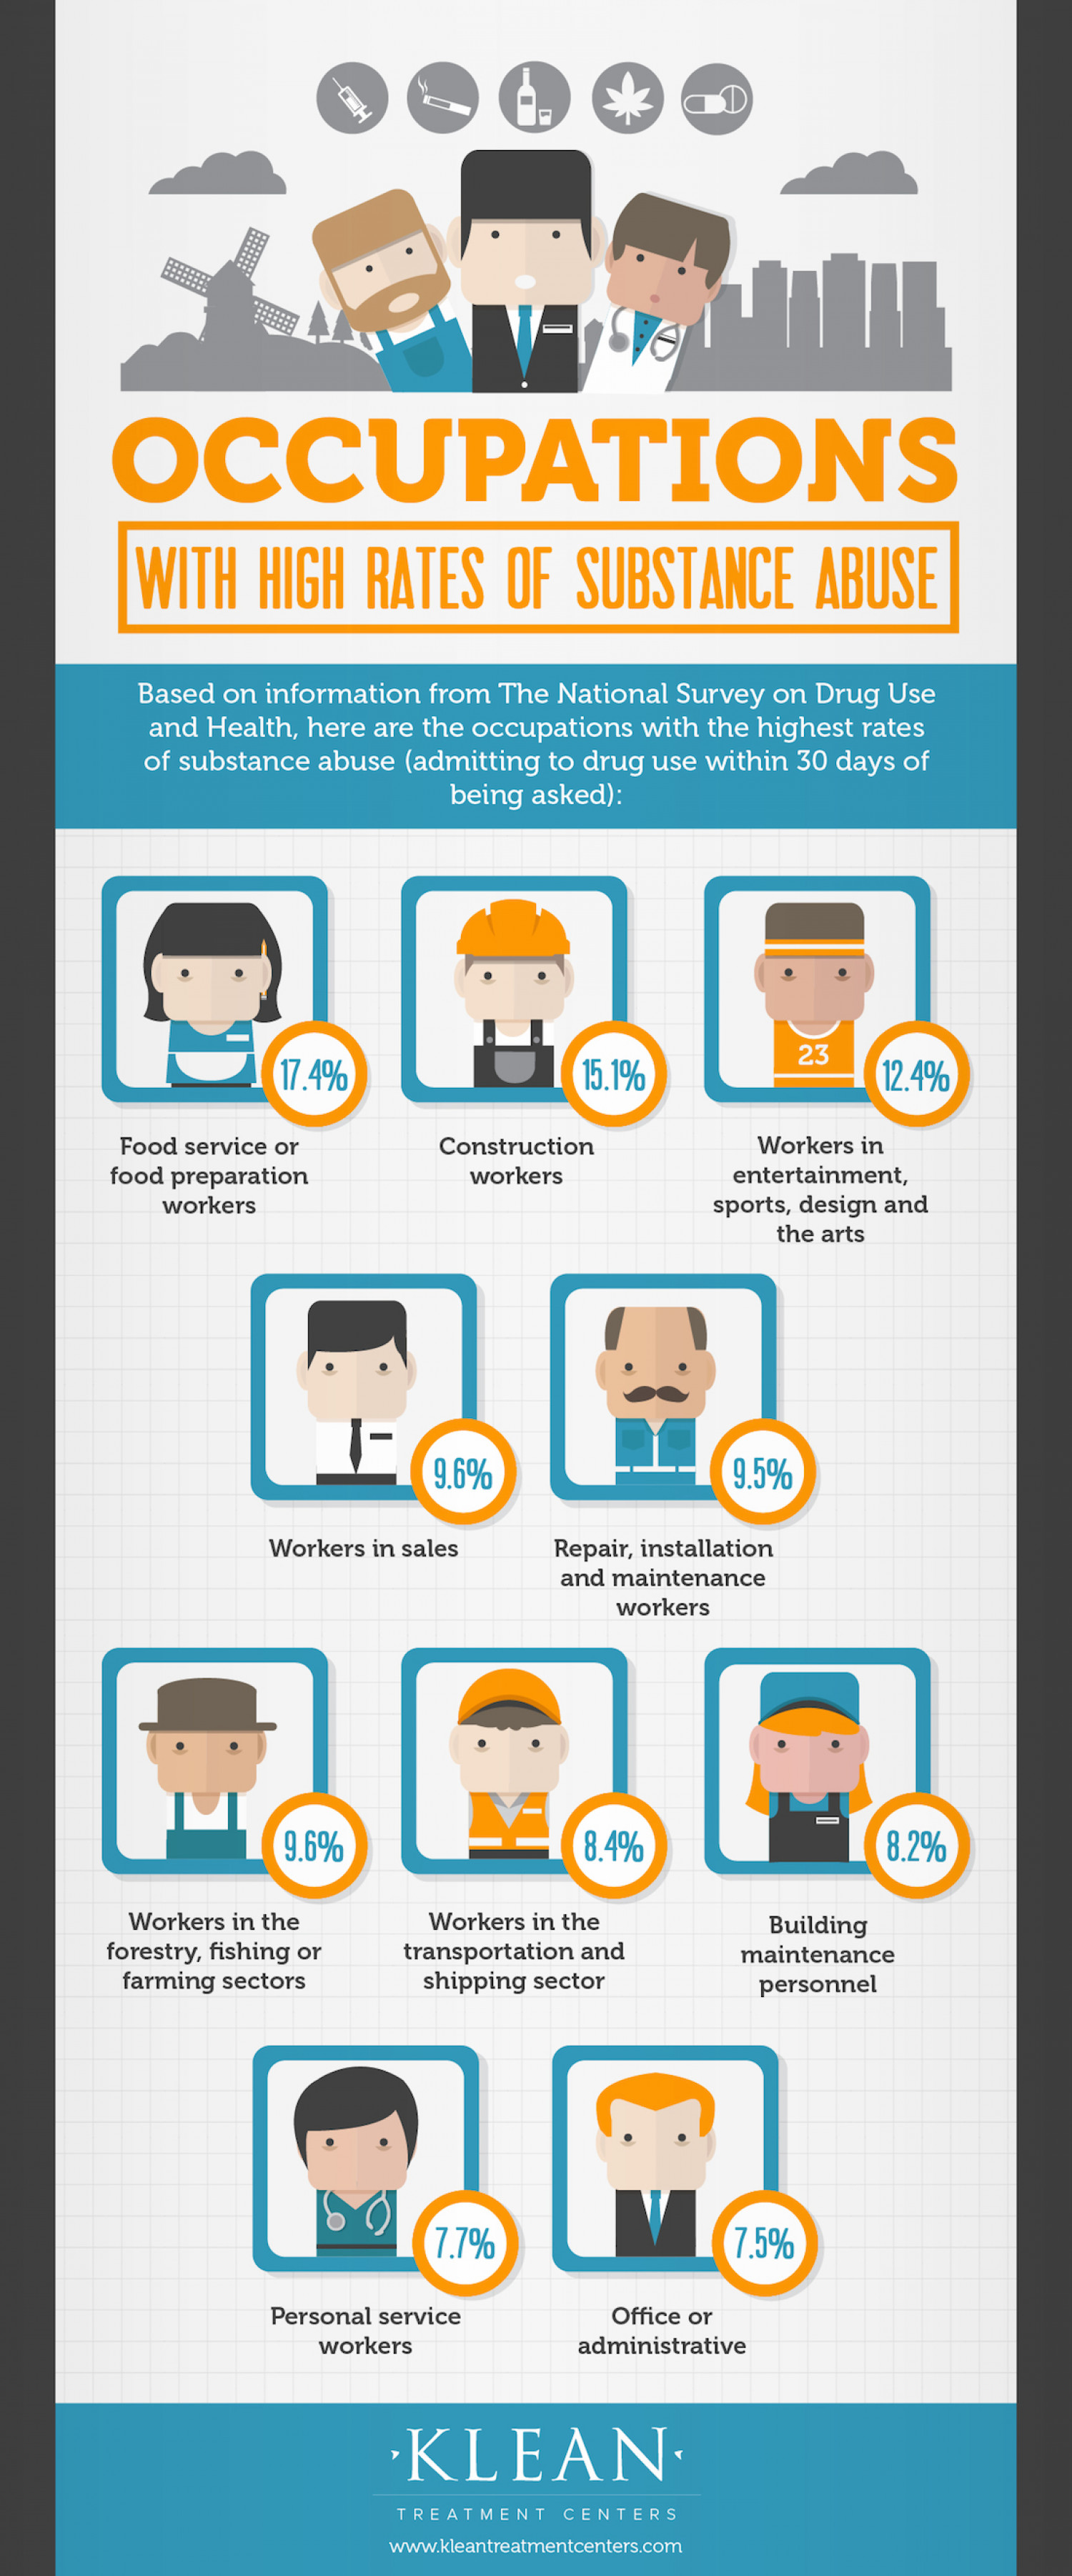 Occupations with High Rates of Substance Abuse Infographic